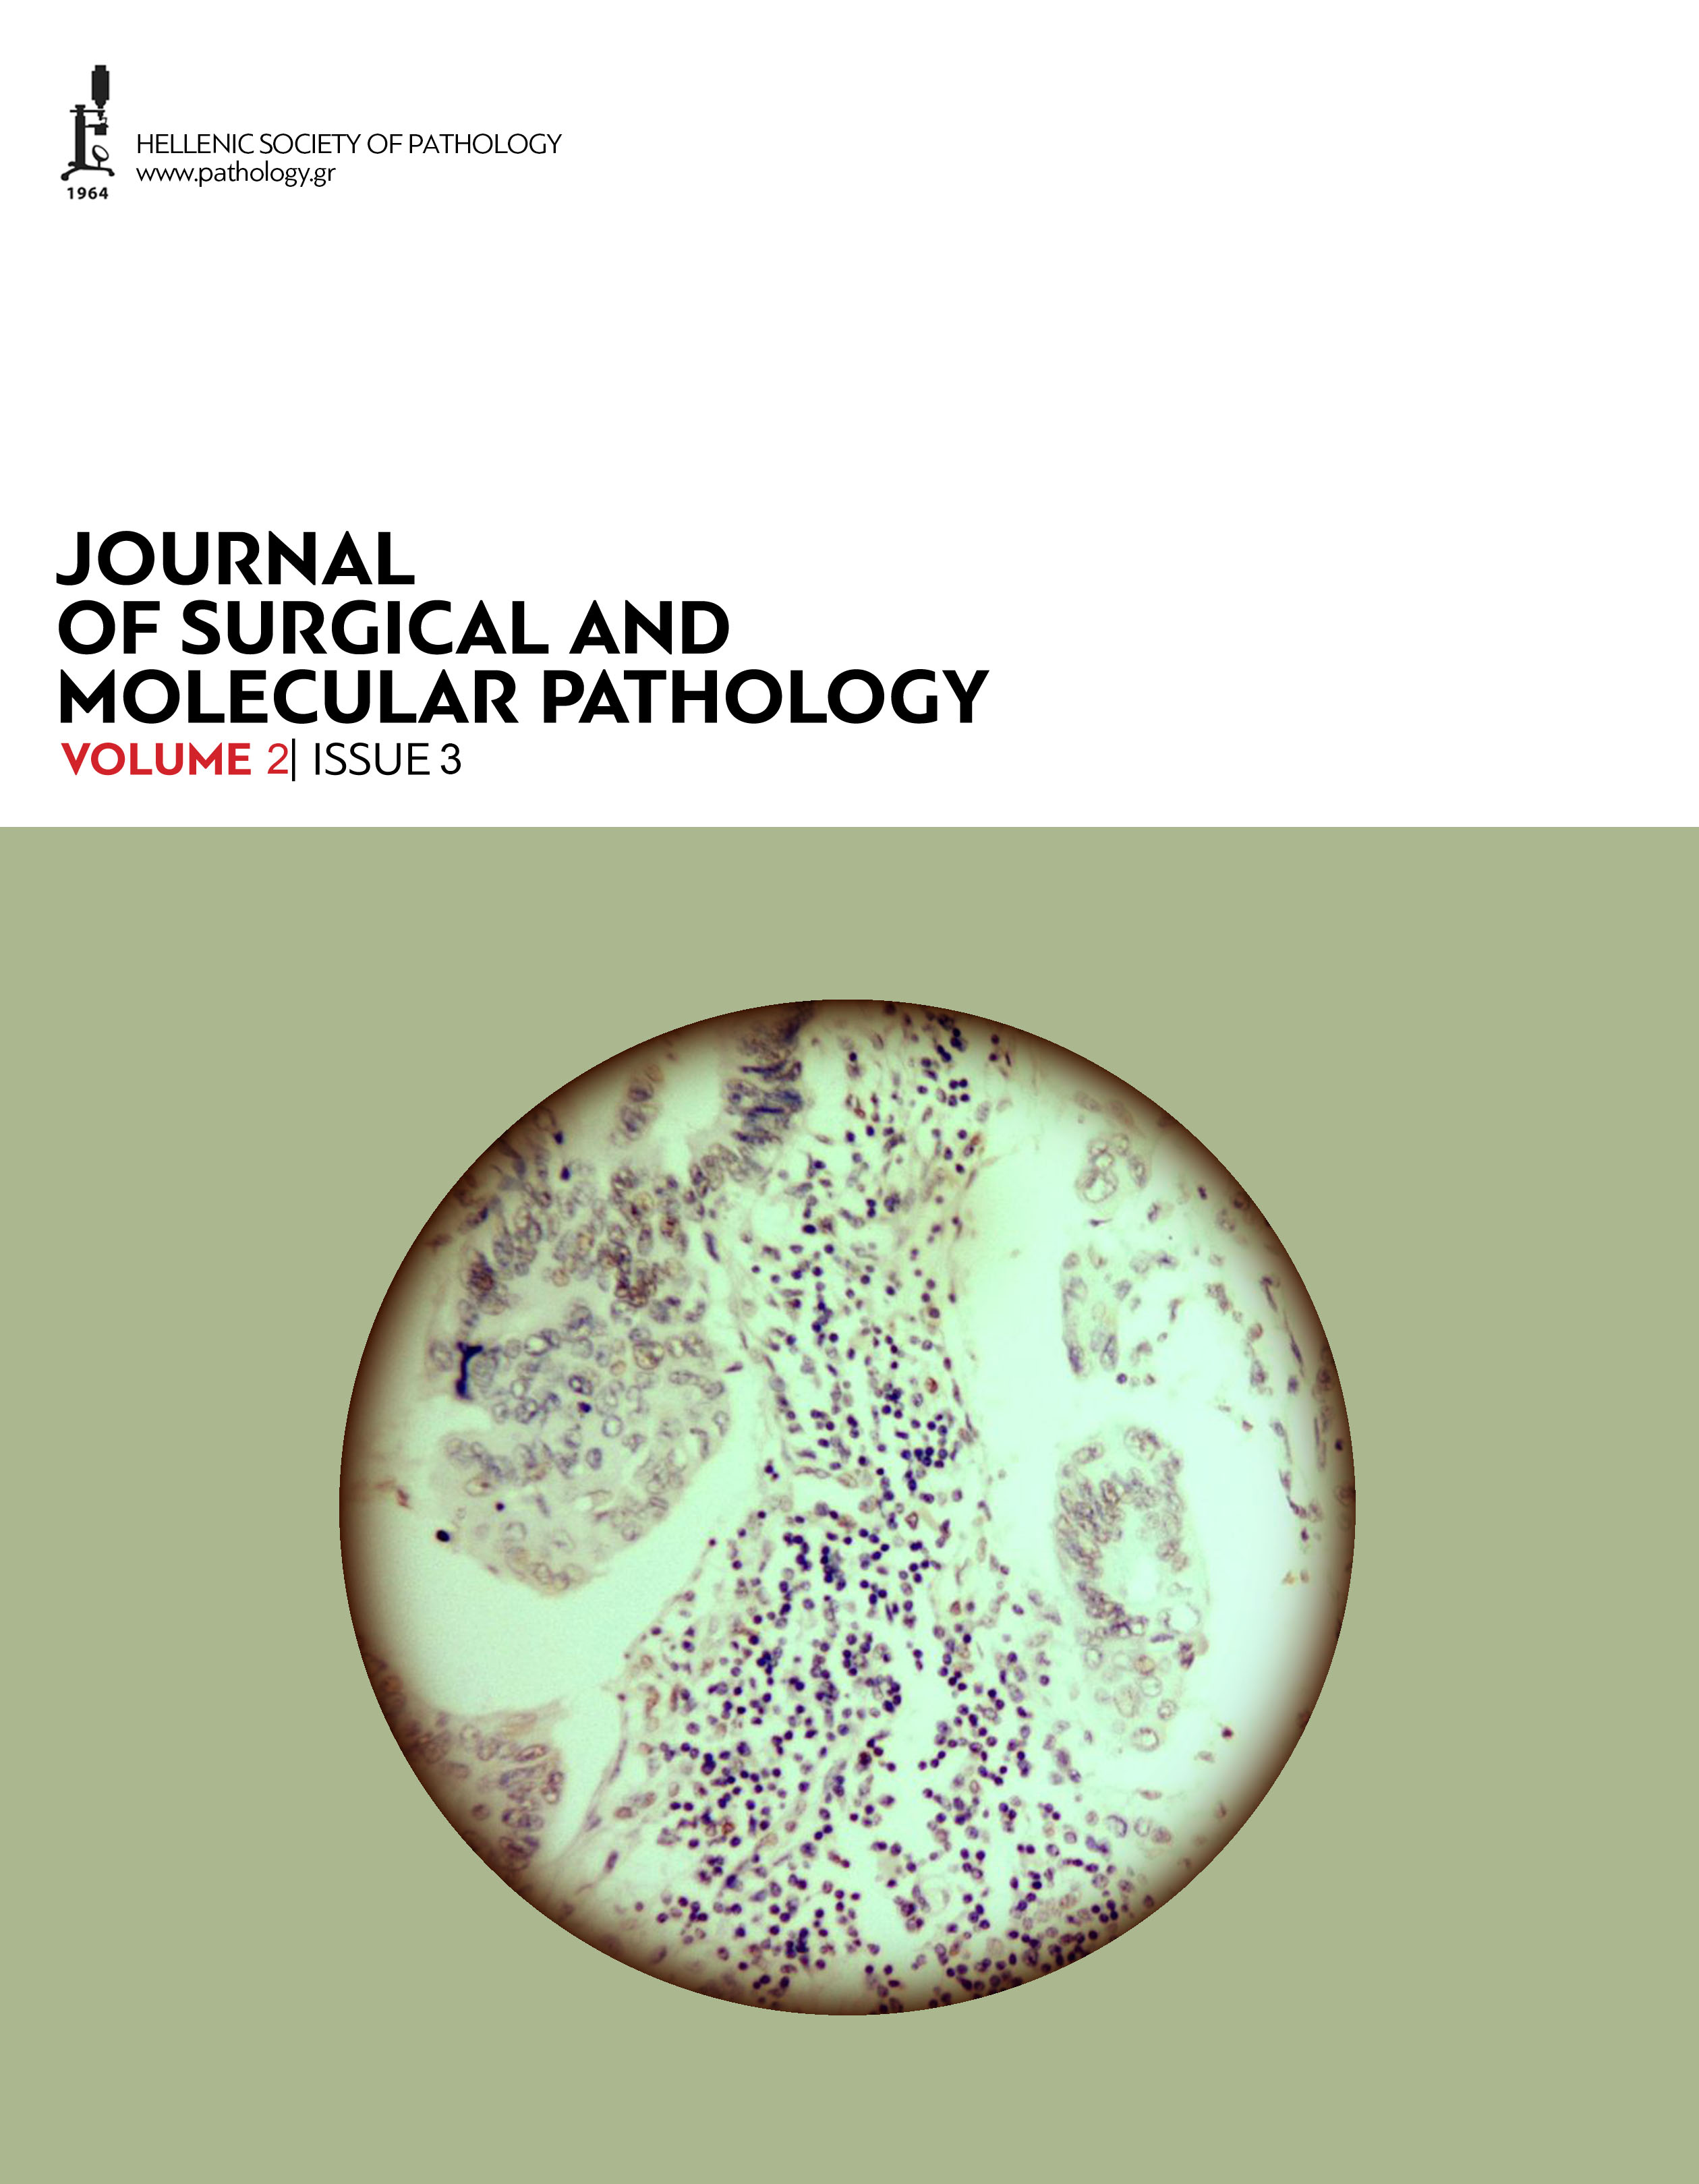 Journal of Surgical and Molecular Pathology, Volume 2, Issue 3 (2016)